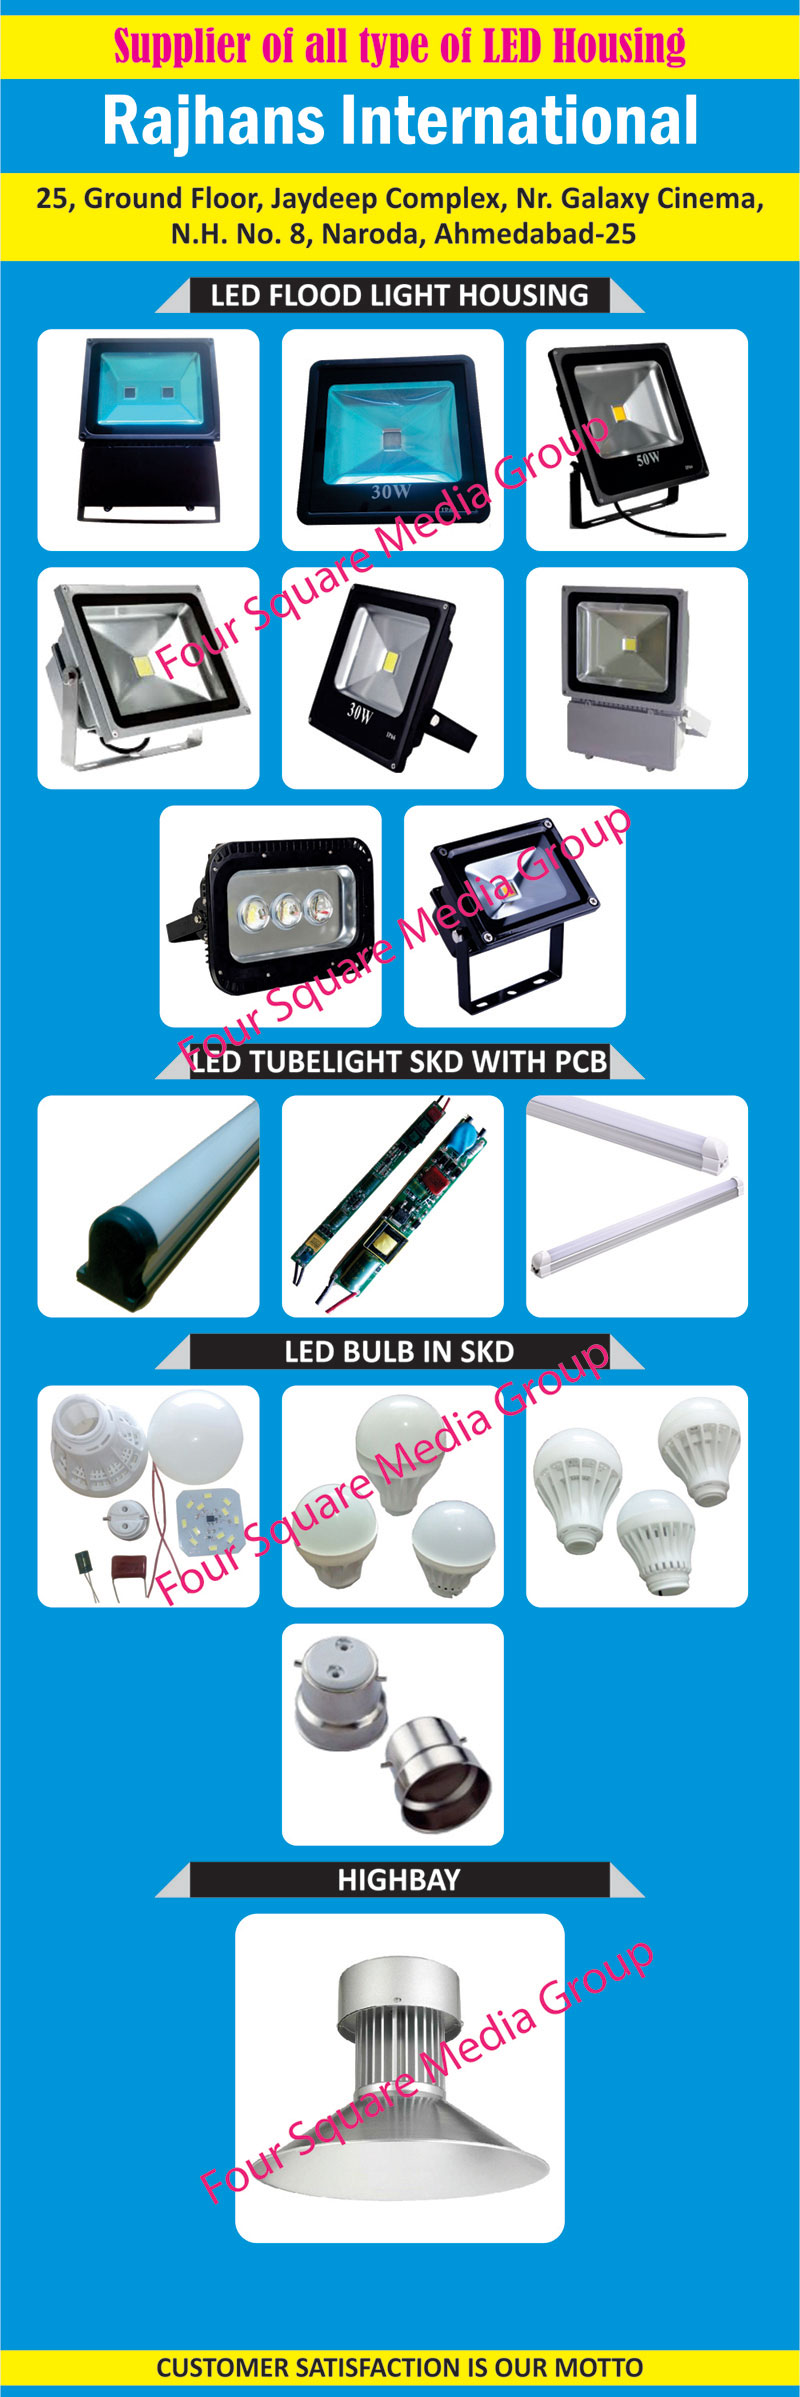 Led Light Accessories, Led Drivers, Street Light Fixture, MCPCB, Led Down lights, White Acrylic Tube, Philips Led Heat Sink, Philips Led Disk, Philips DLM, Philips Led Disk DLM, Philips DLM Fixtures, Led Housing, Led Flood Light Housing, Led Tube Light SKD With Printed Circuit Boards, Led Bulb in SKD, High Bay Lights,